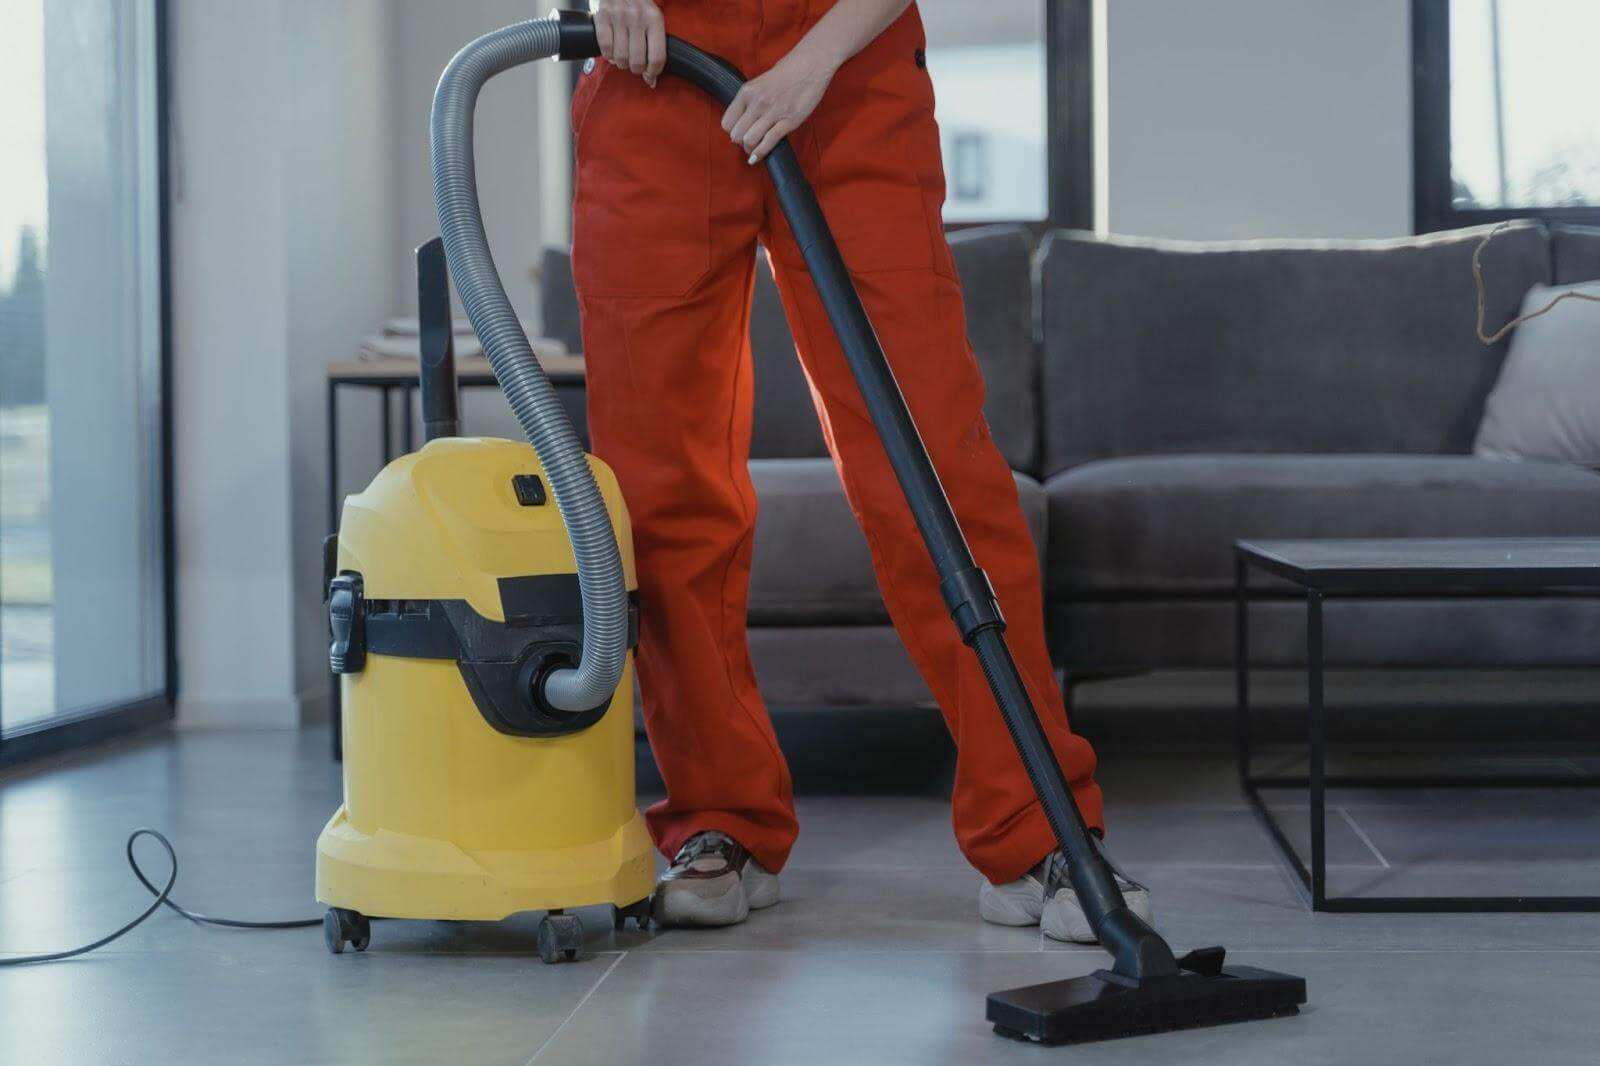 The cleaner the home is, the better your life becomes